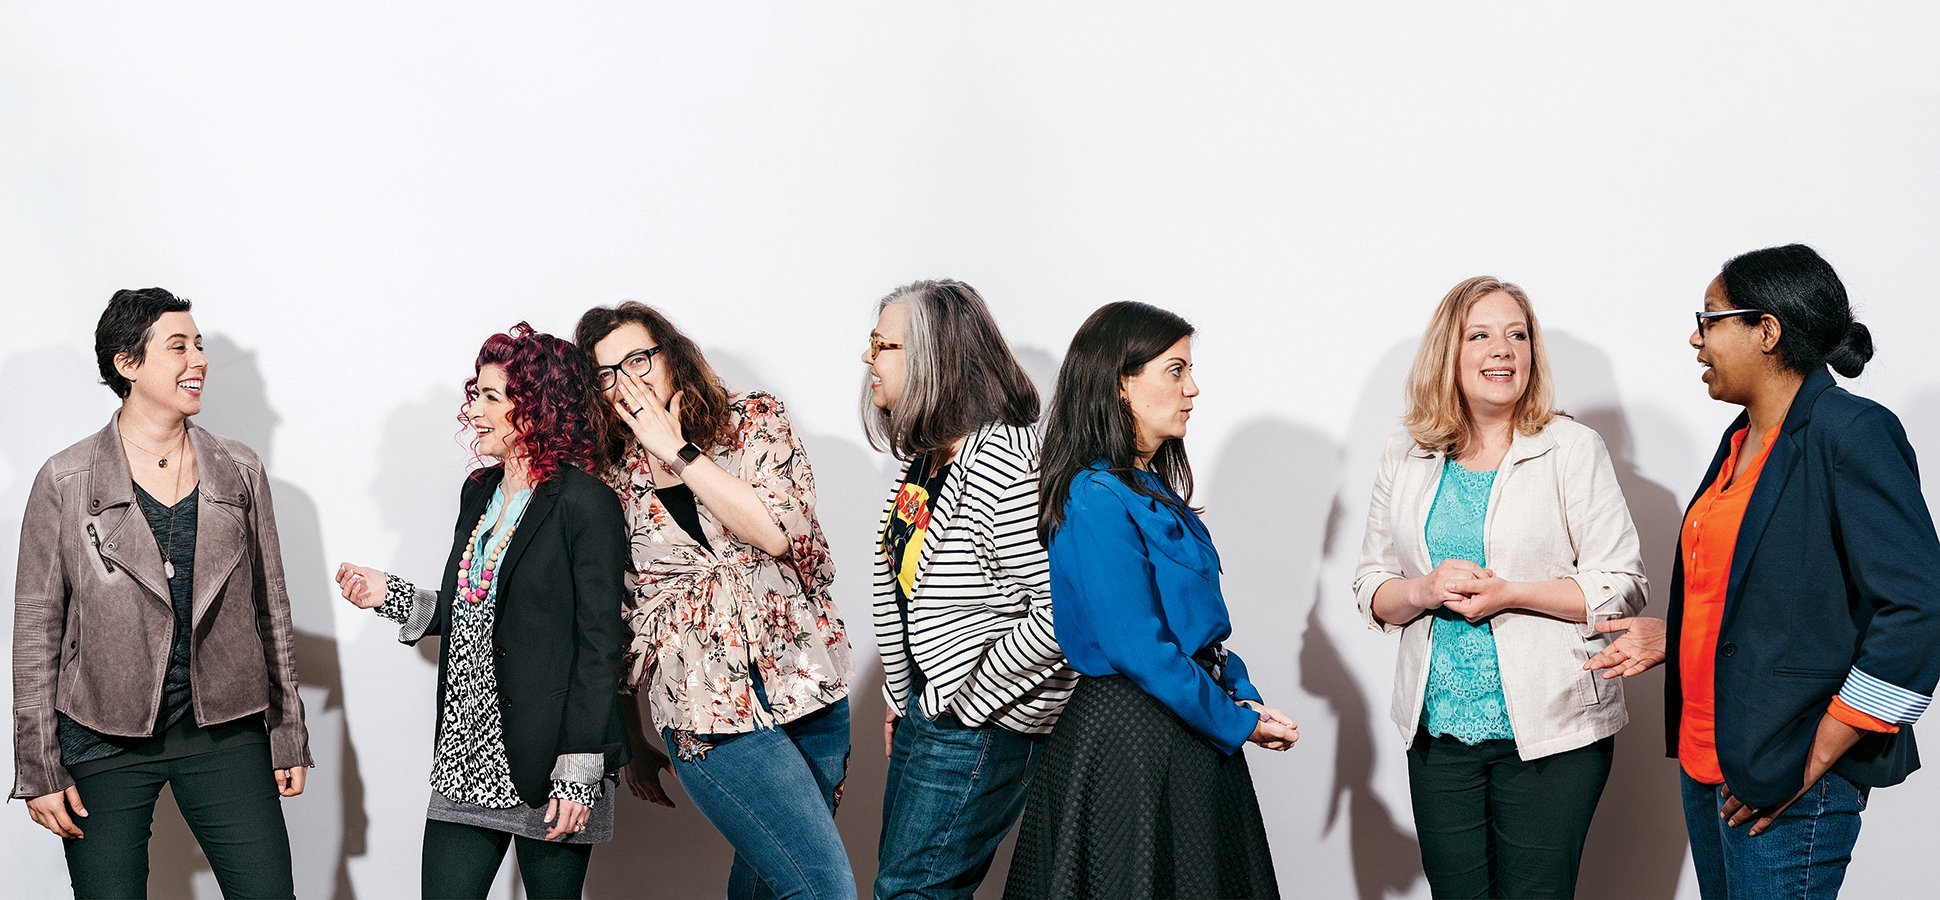 Our Founder, Jessica Roubitchek (left), is pictured in Inc. Magazine this month, along with valued Mastermind Group colleagues (left to right) Alisa DiMarco of  Tekhni Wovens  , Xza Higgins of  Parent & Co , Candice Blansett-Cummins with  C'Mon Let's Rally  and  Wishcraft Workshop , Misse Daniel of  HoneyBee Weddings , Jessica Solares of  Bucktown Music , and Tiana Kubik of  TK Photography .   Click here  to read the article!